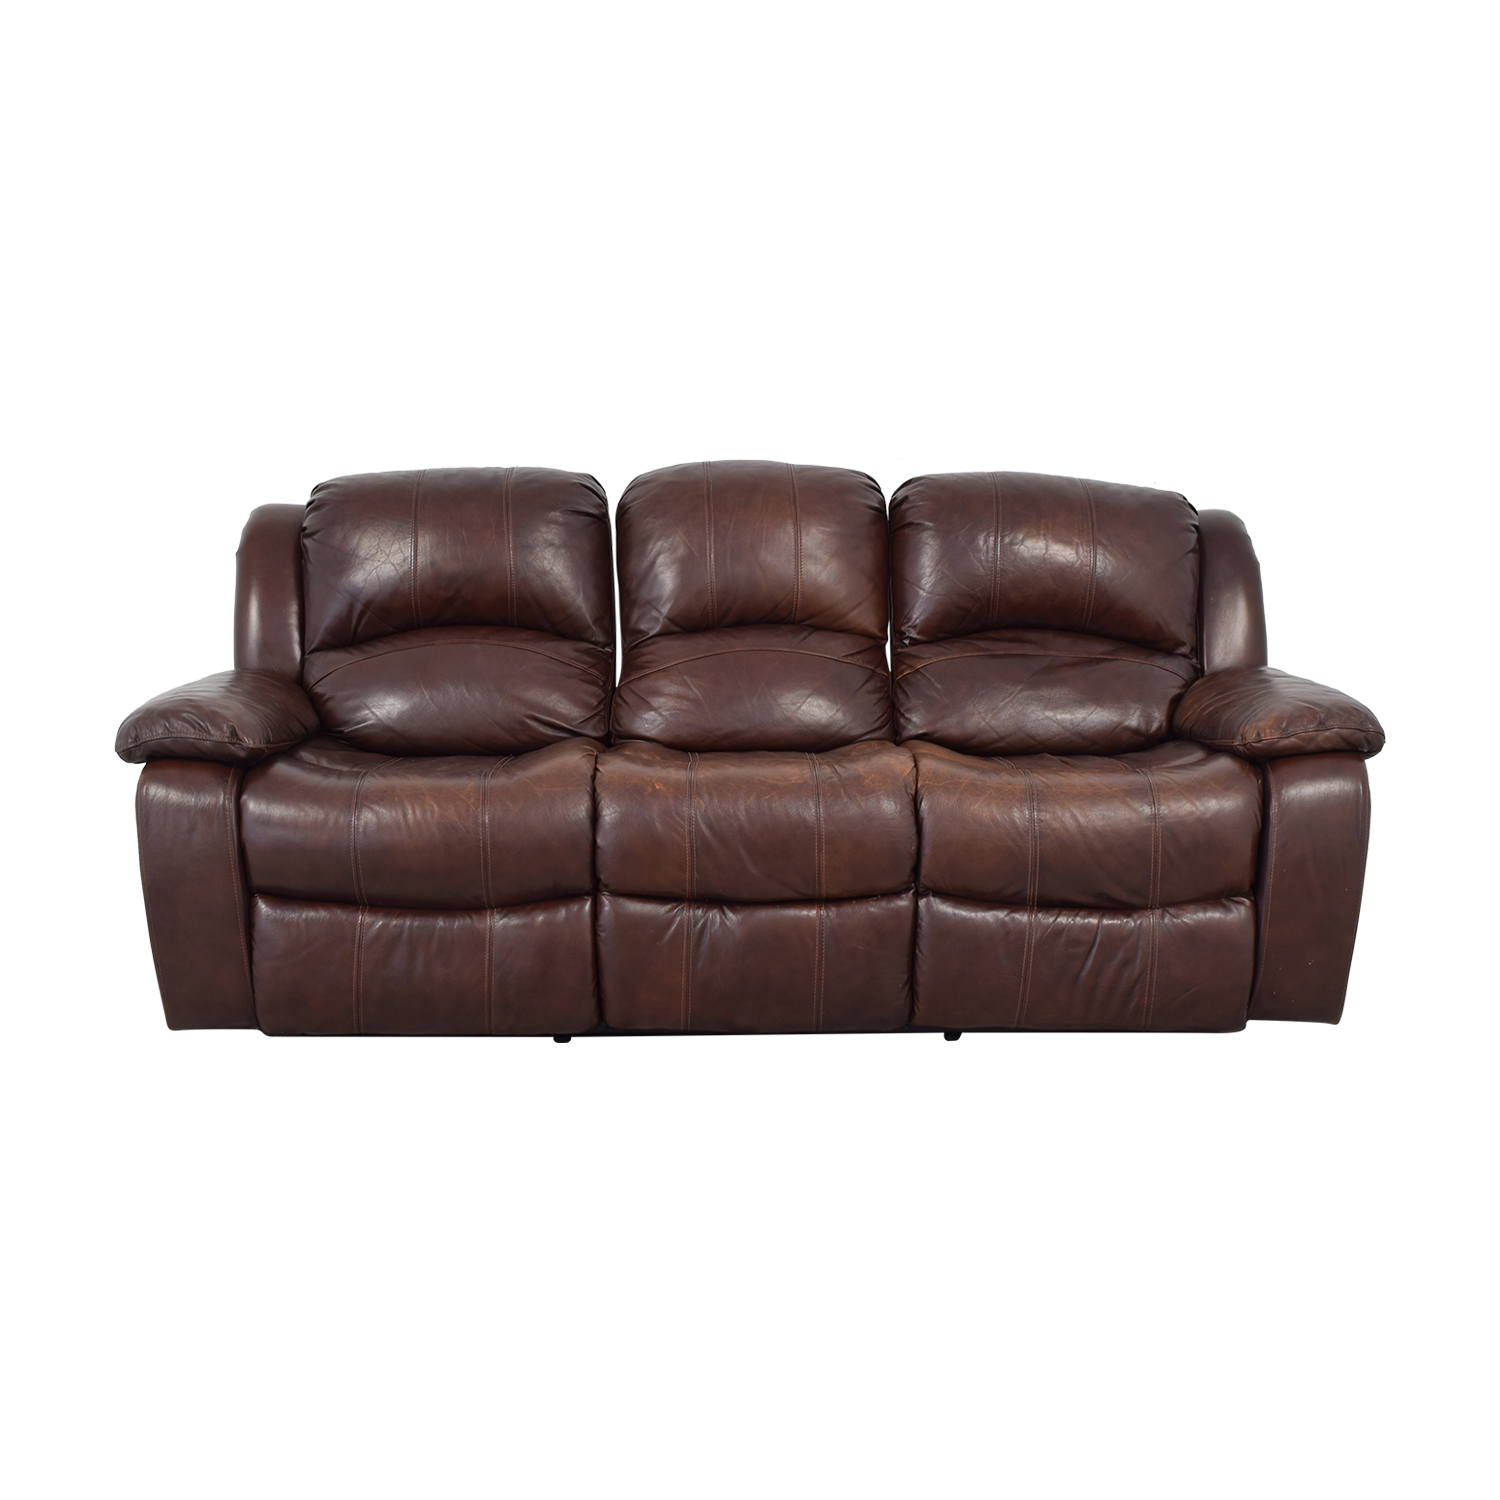 Raymour & Flanigan Raymour & Flanigan Reclining Sofa coupon